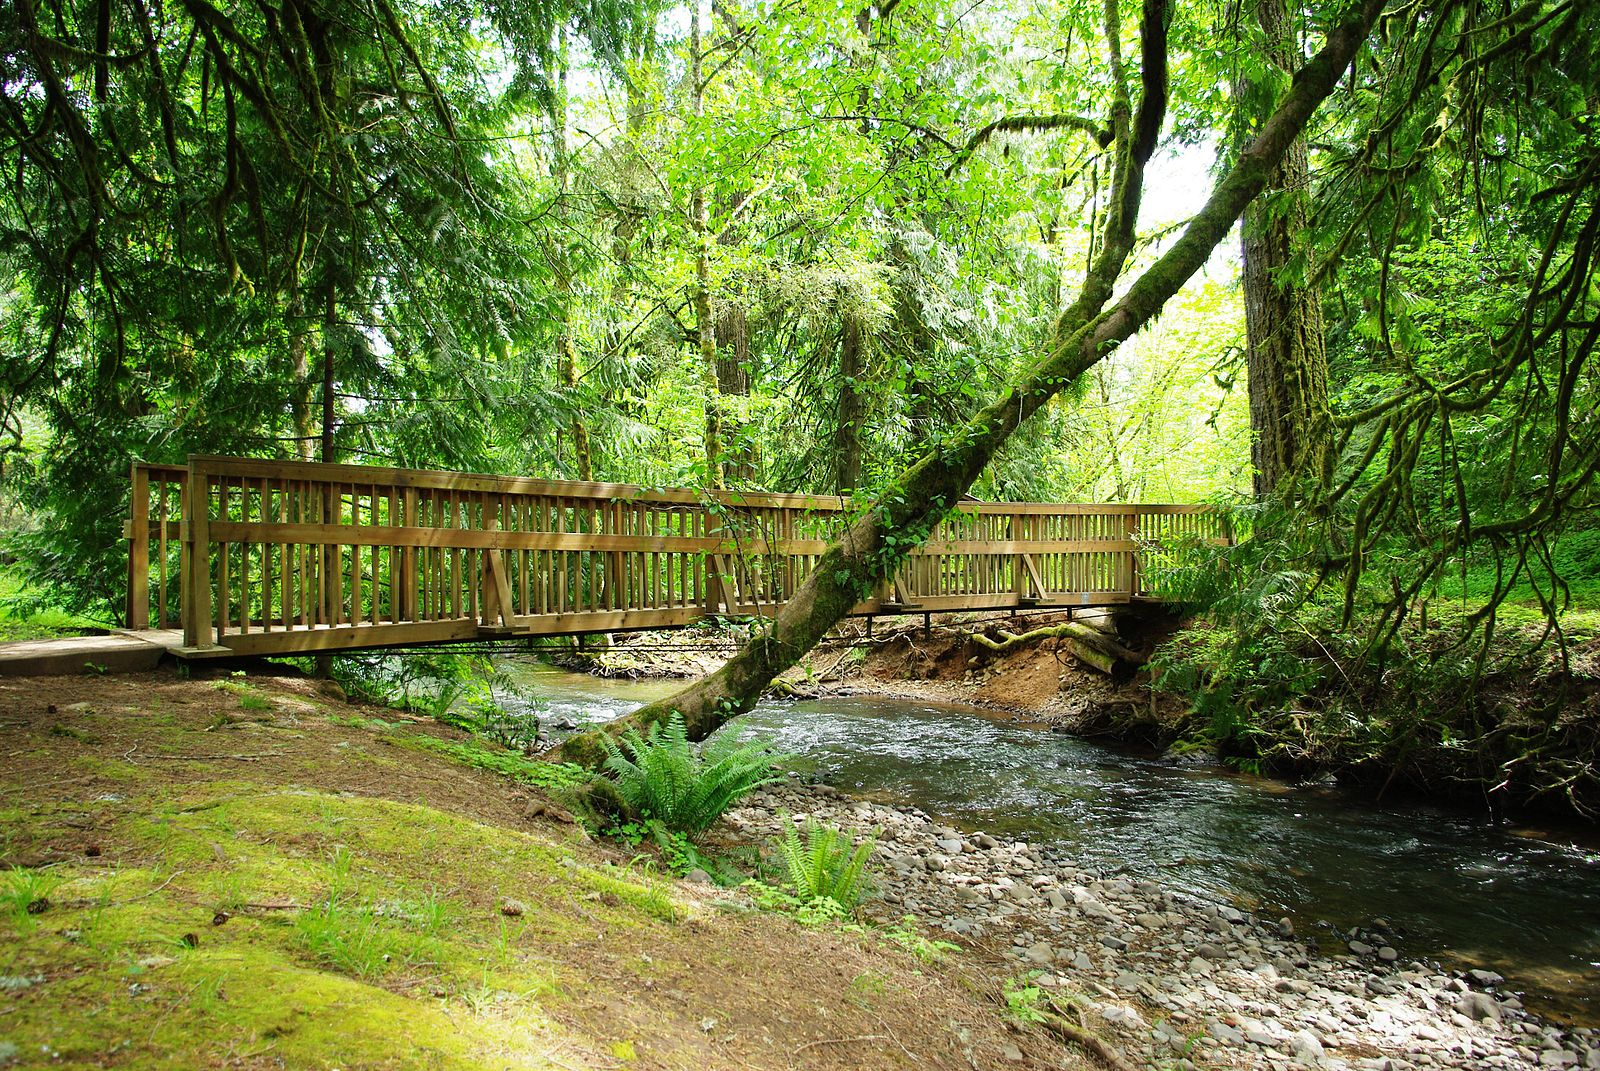 Menefee_County_Park_bridge_-_Yamhill_County,_Oregon